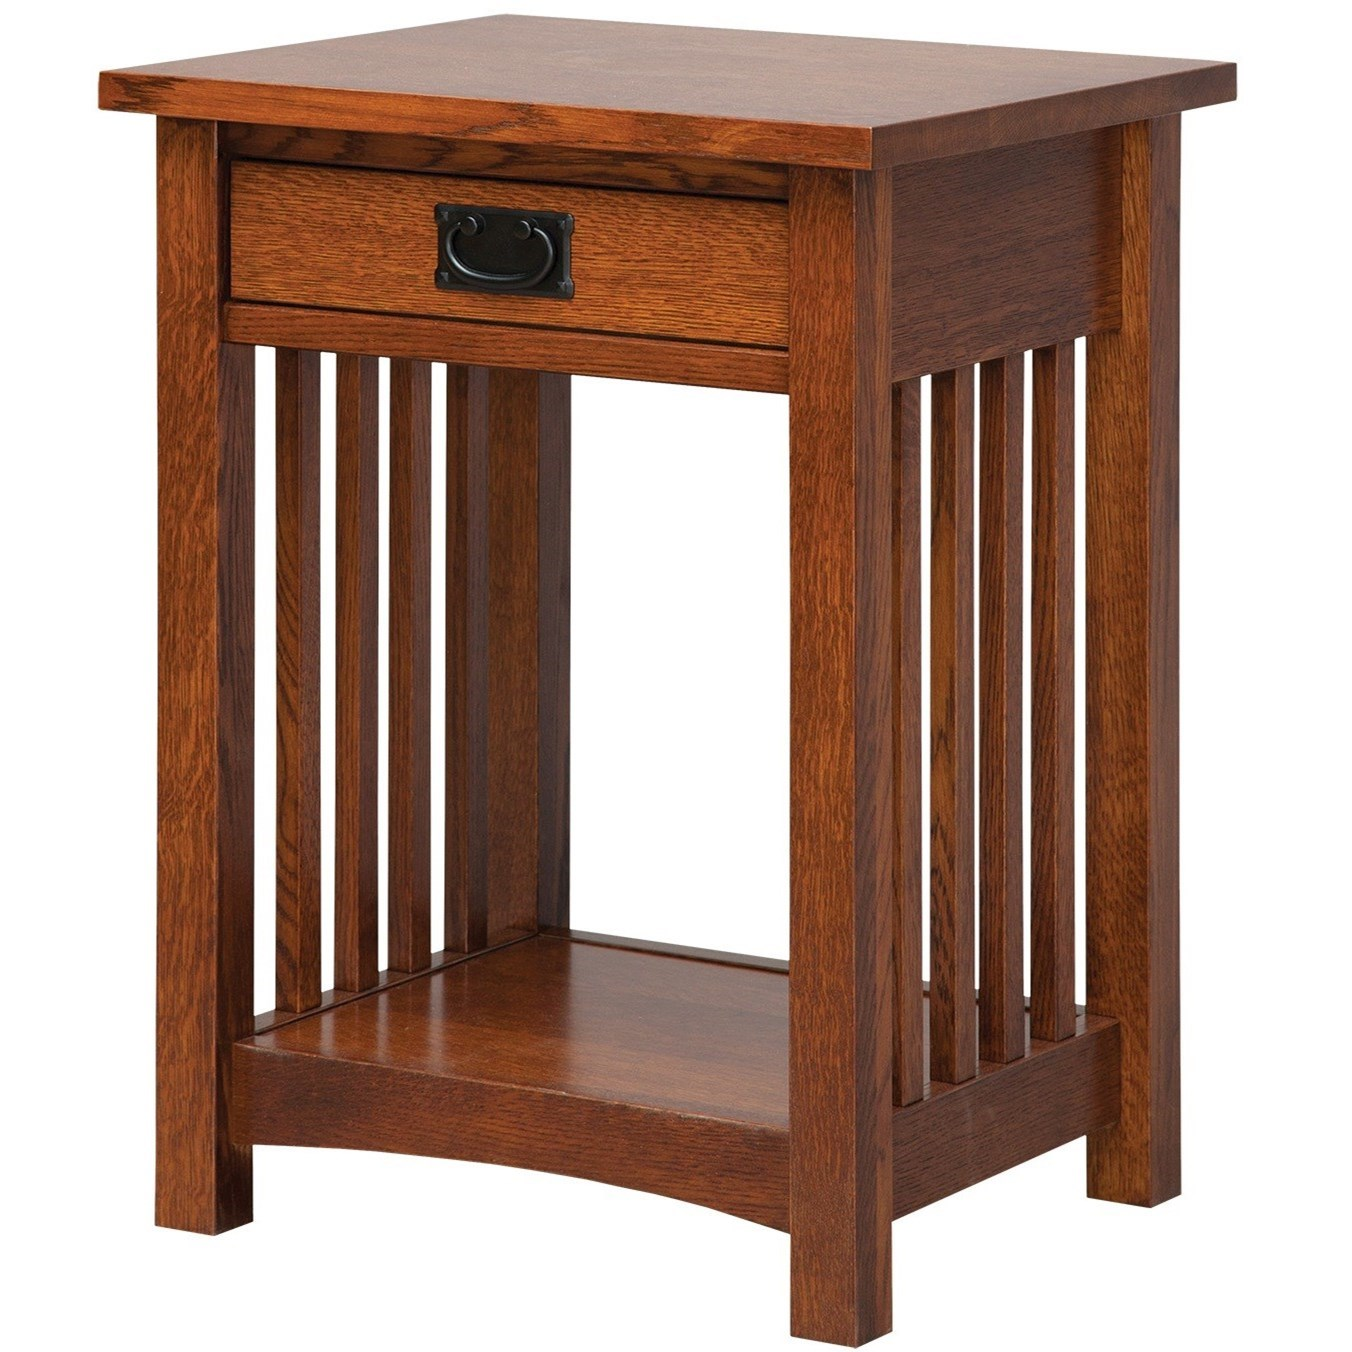 Elegance Nightstand by Daniel's Amish at Rotmans